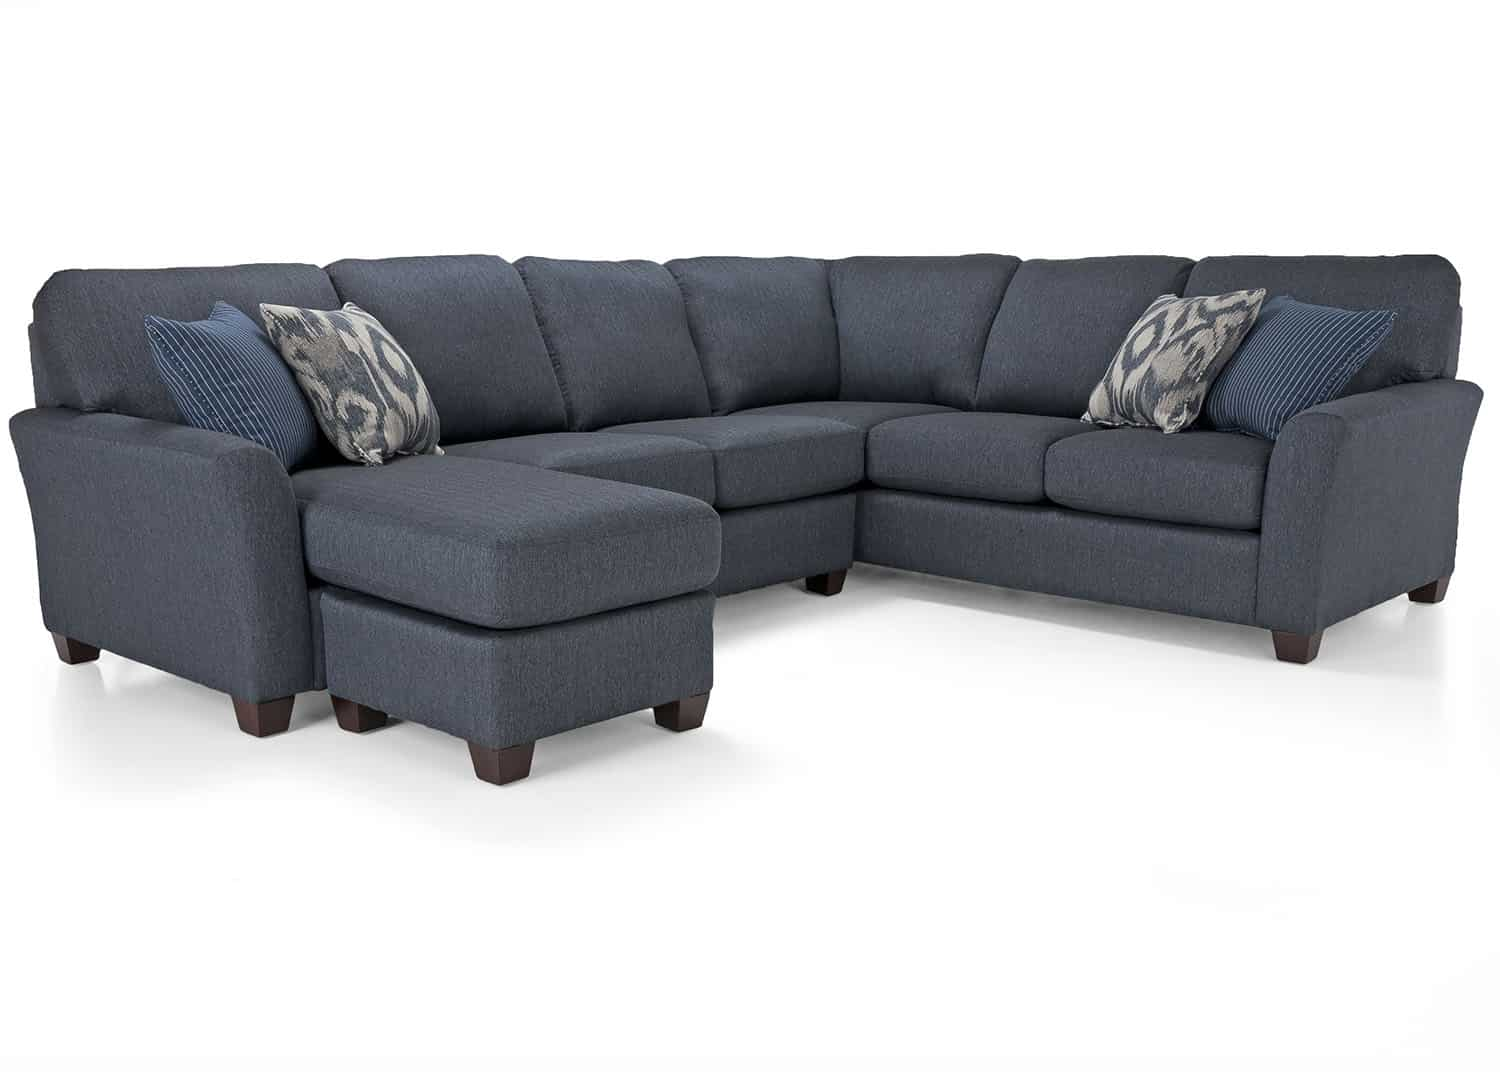 Brent sectional sofa mobilart decor high end furniture for Meuble sofa montreal